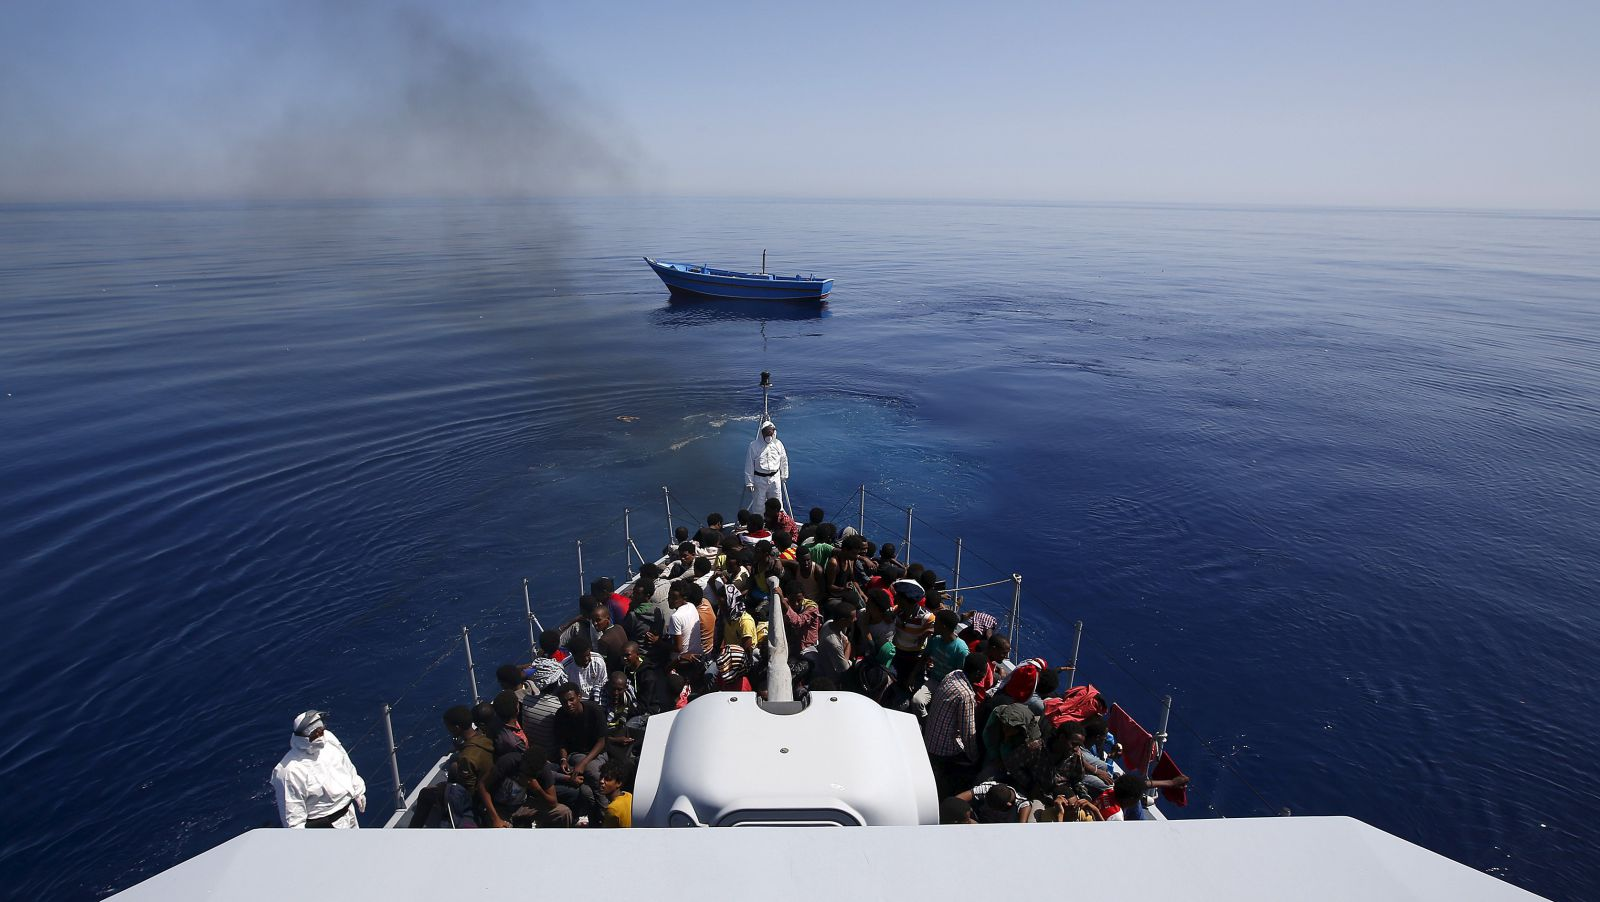 an-egyptian-billionaire-wants-to-buy-a-mediterranean-island-for-refugees